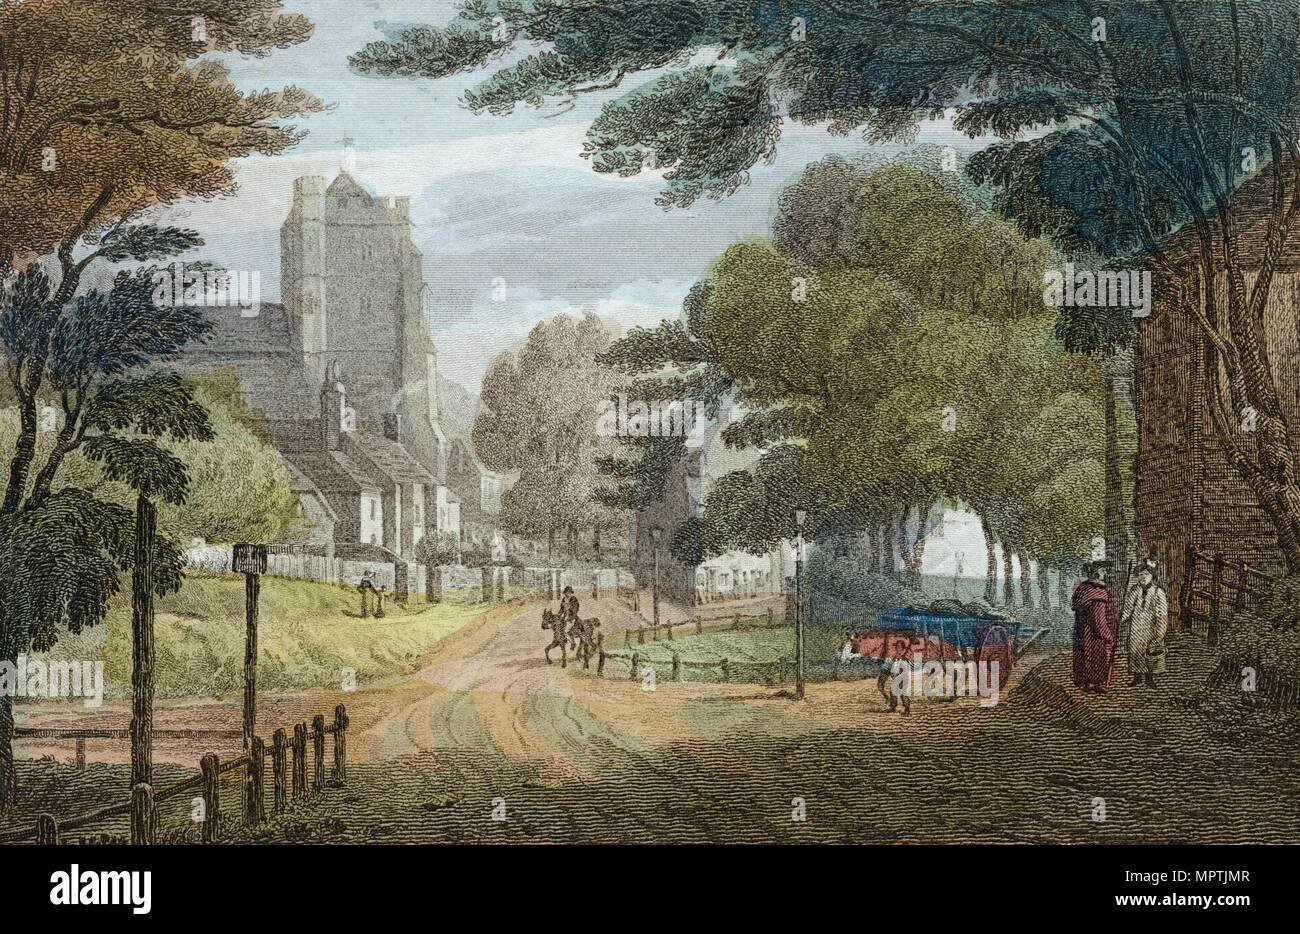 Entrance to Hastings, East Sussex, from Old London Road, showing All Saints' Church, c1790. Artist: Anon. - Stock Image